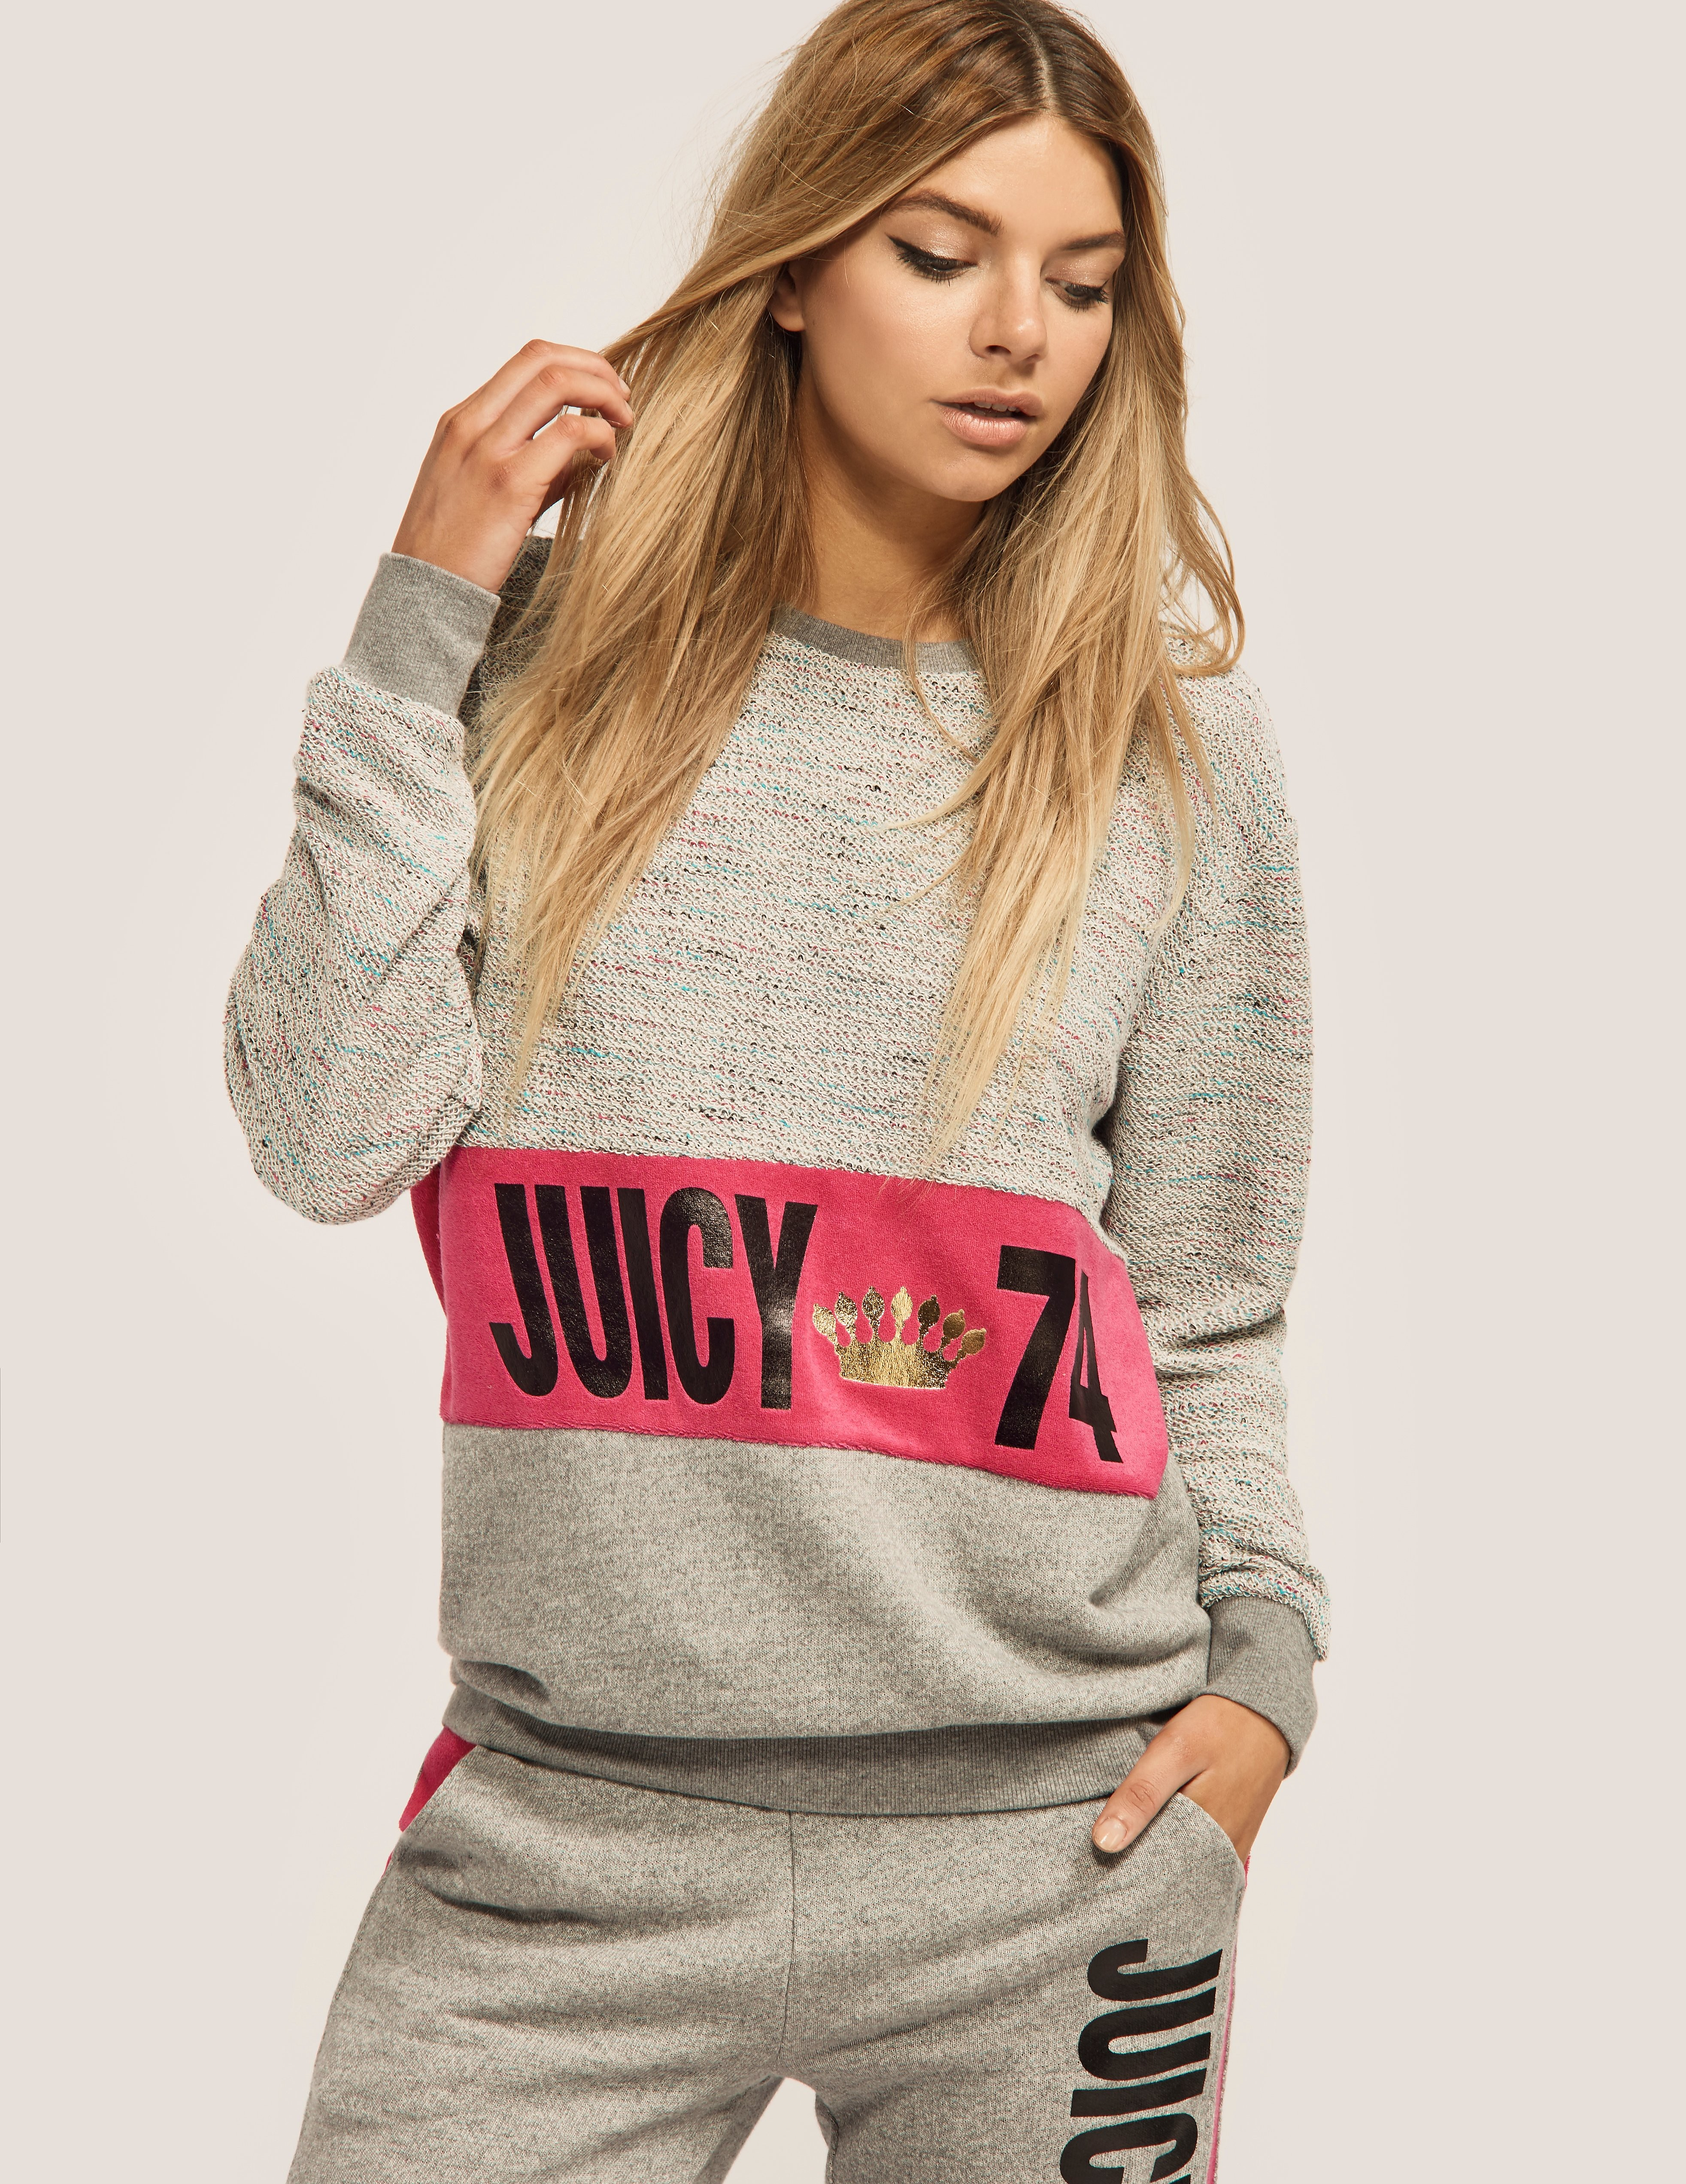 Juicy Couture French Terry Juicy 74 Sweatshirt